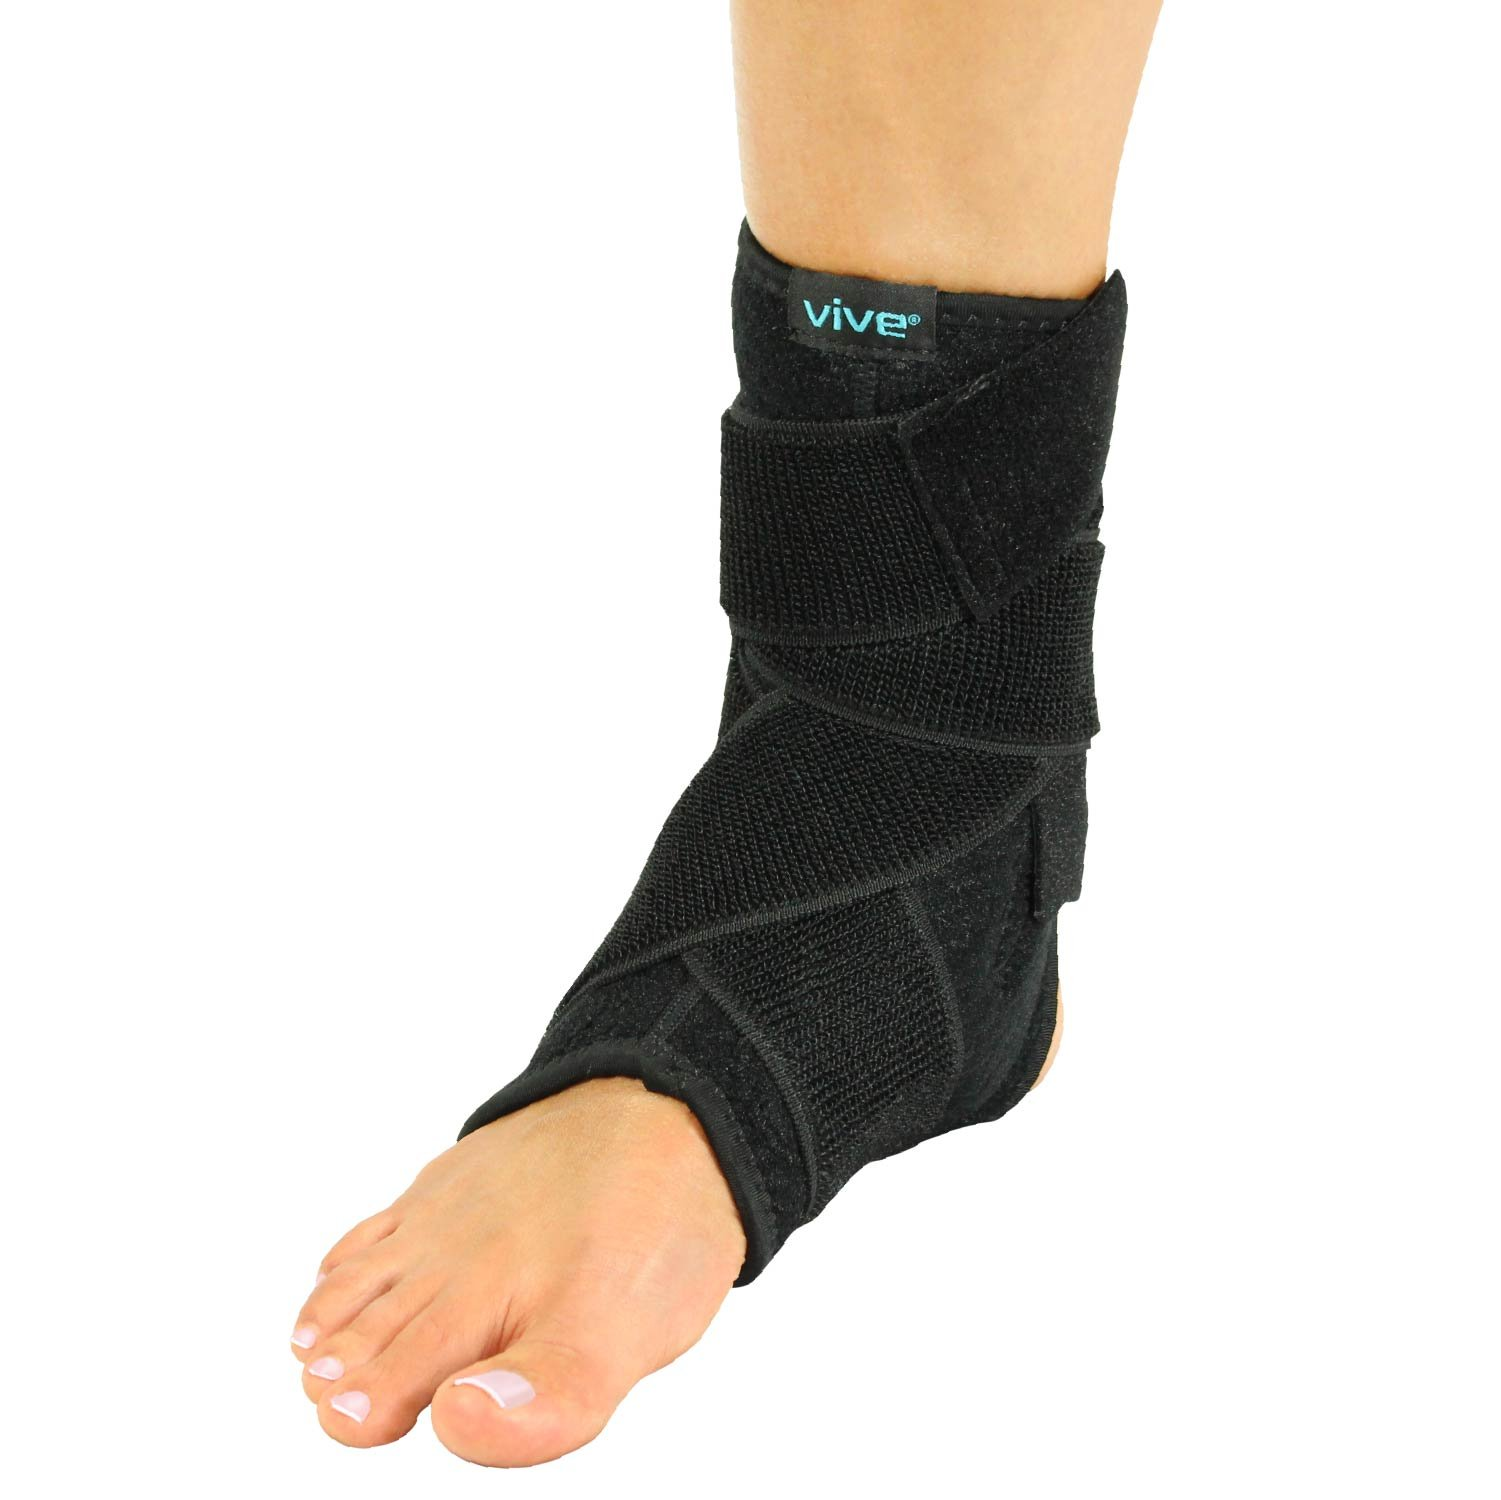 Vive Ankle Stabilizer Brace - Neoprene Compression Foot Support Wrap Protector - Tendonitis, Heel Spur, Sprained Feet Sprain, Running, Soccer, Football, Volleyball, Basketball - Men,Women, Right, Left